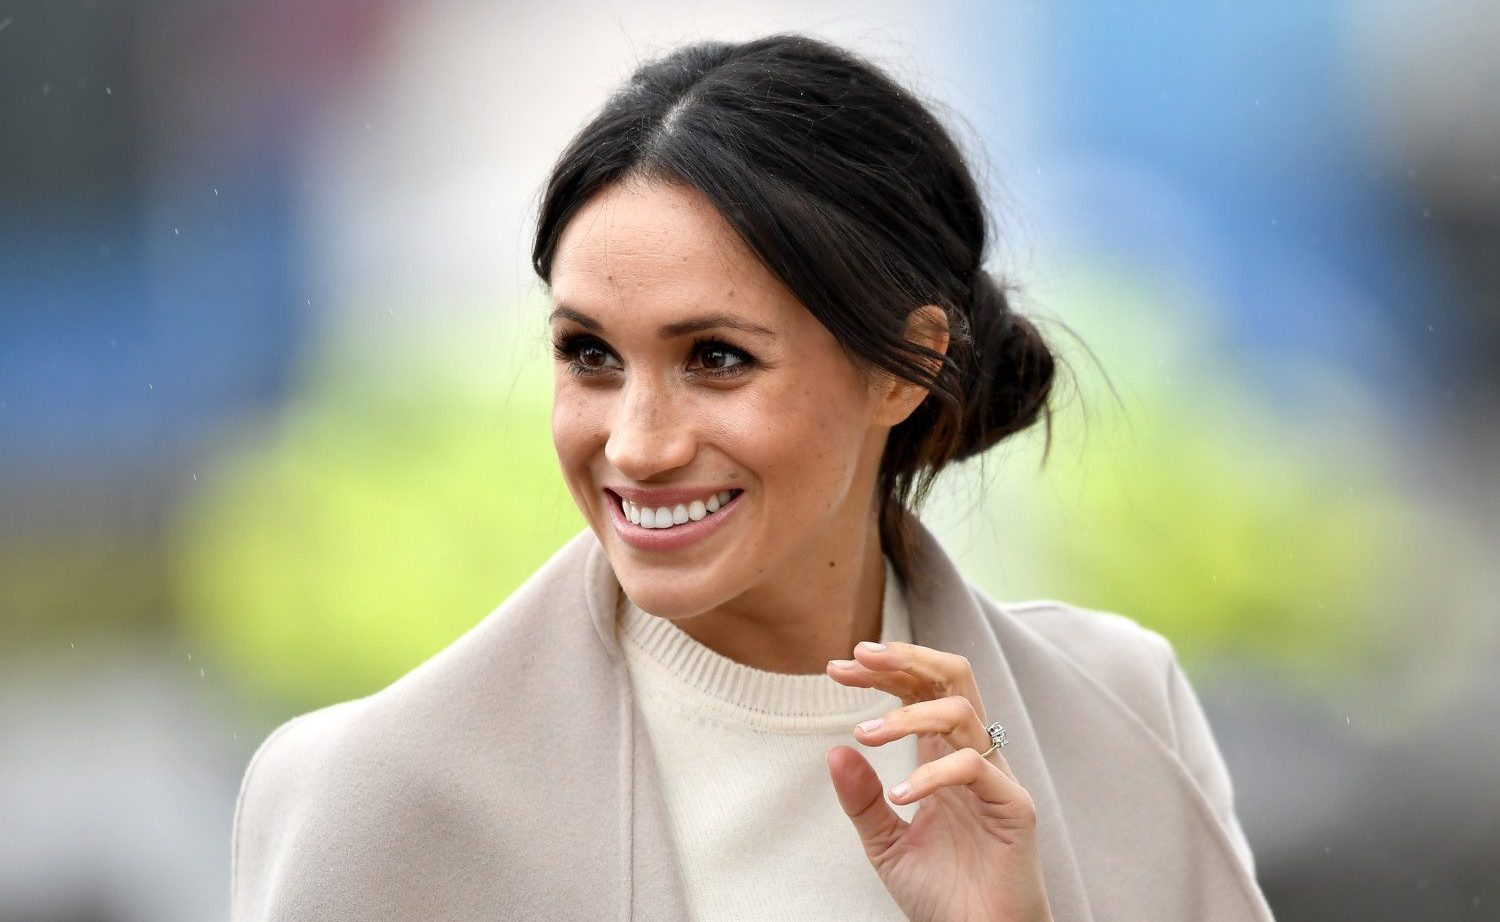 Meghan Markle smiling, waiving at the camera